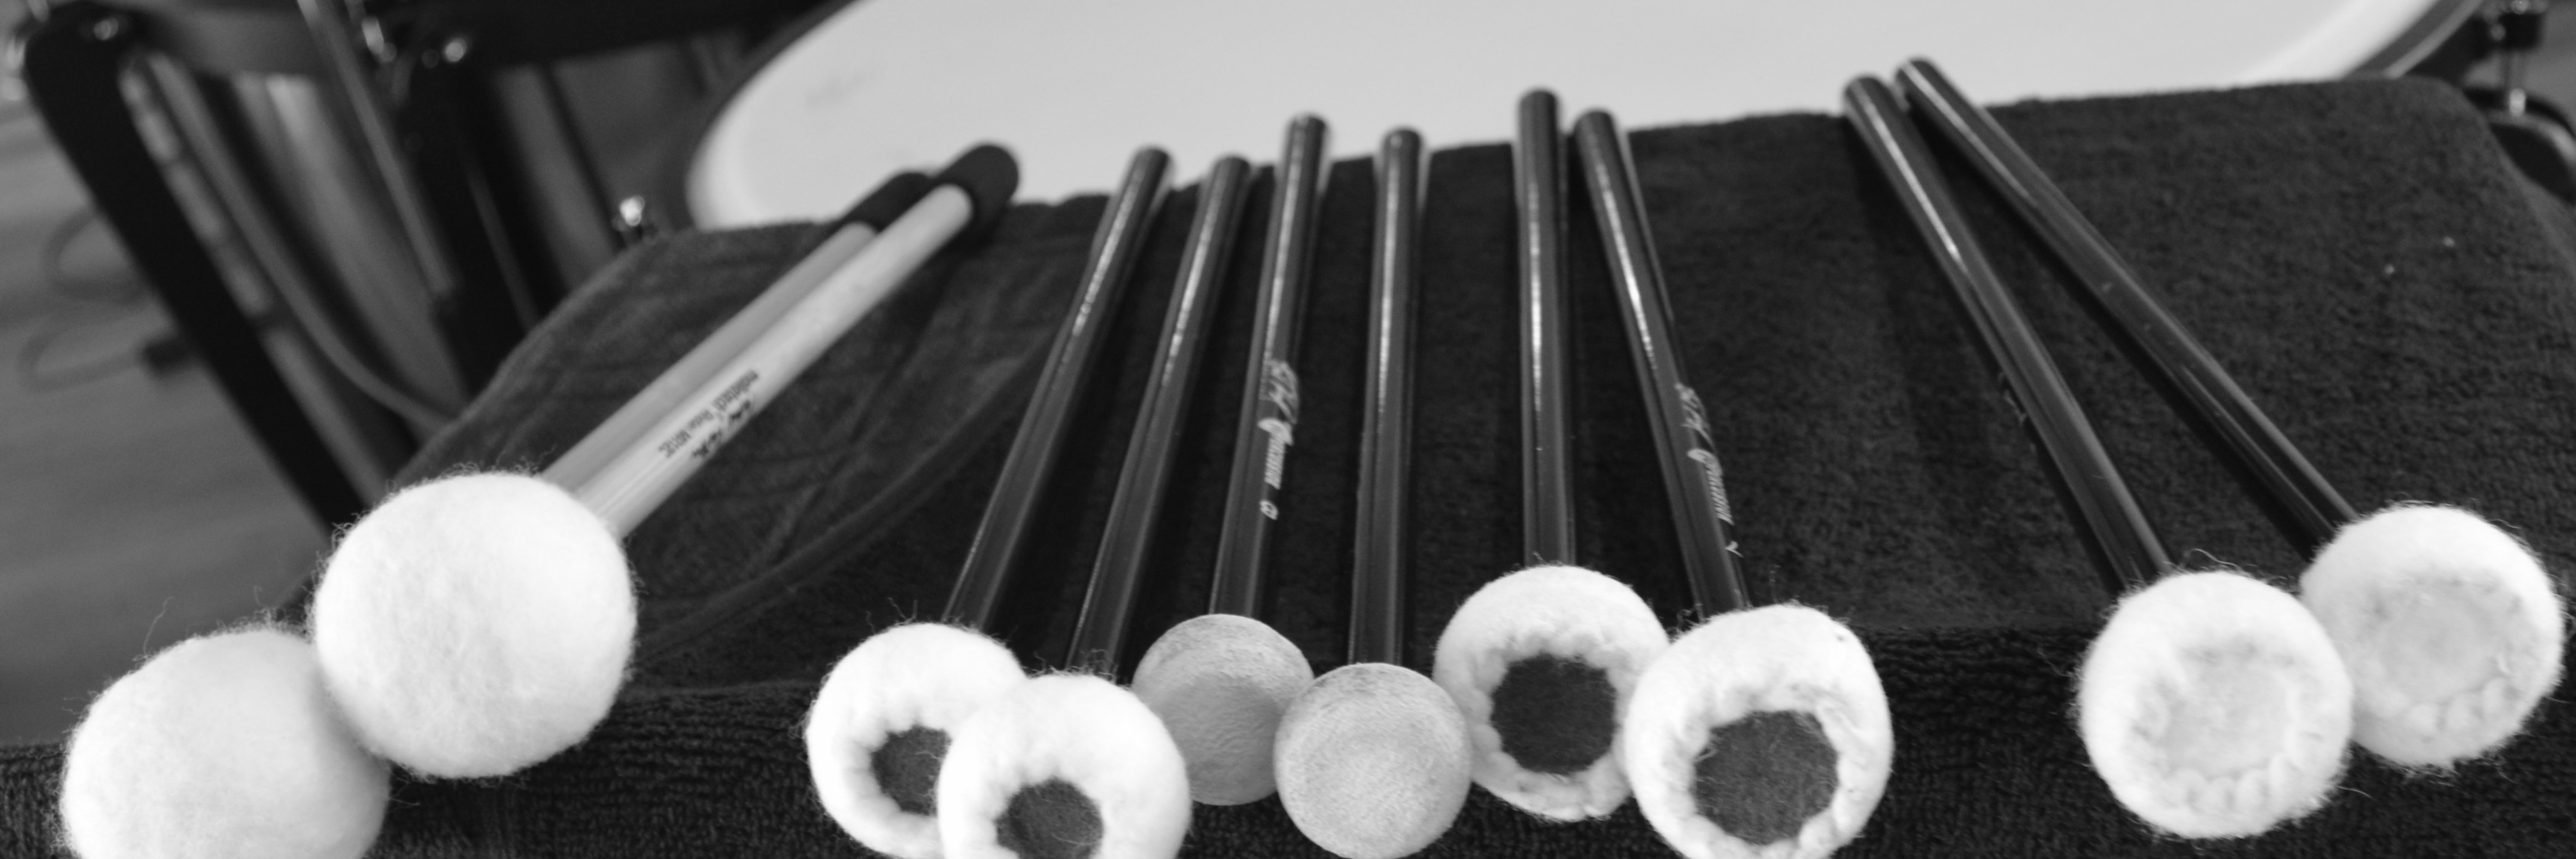 Image: Percussion mallets lying on stand in front of timpani (kettle drums)